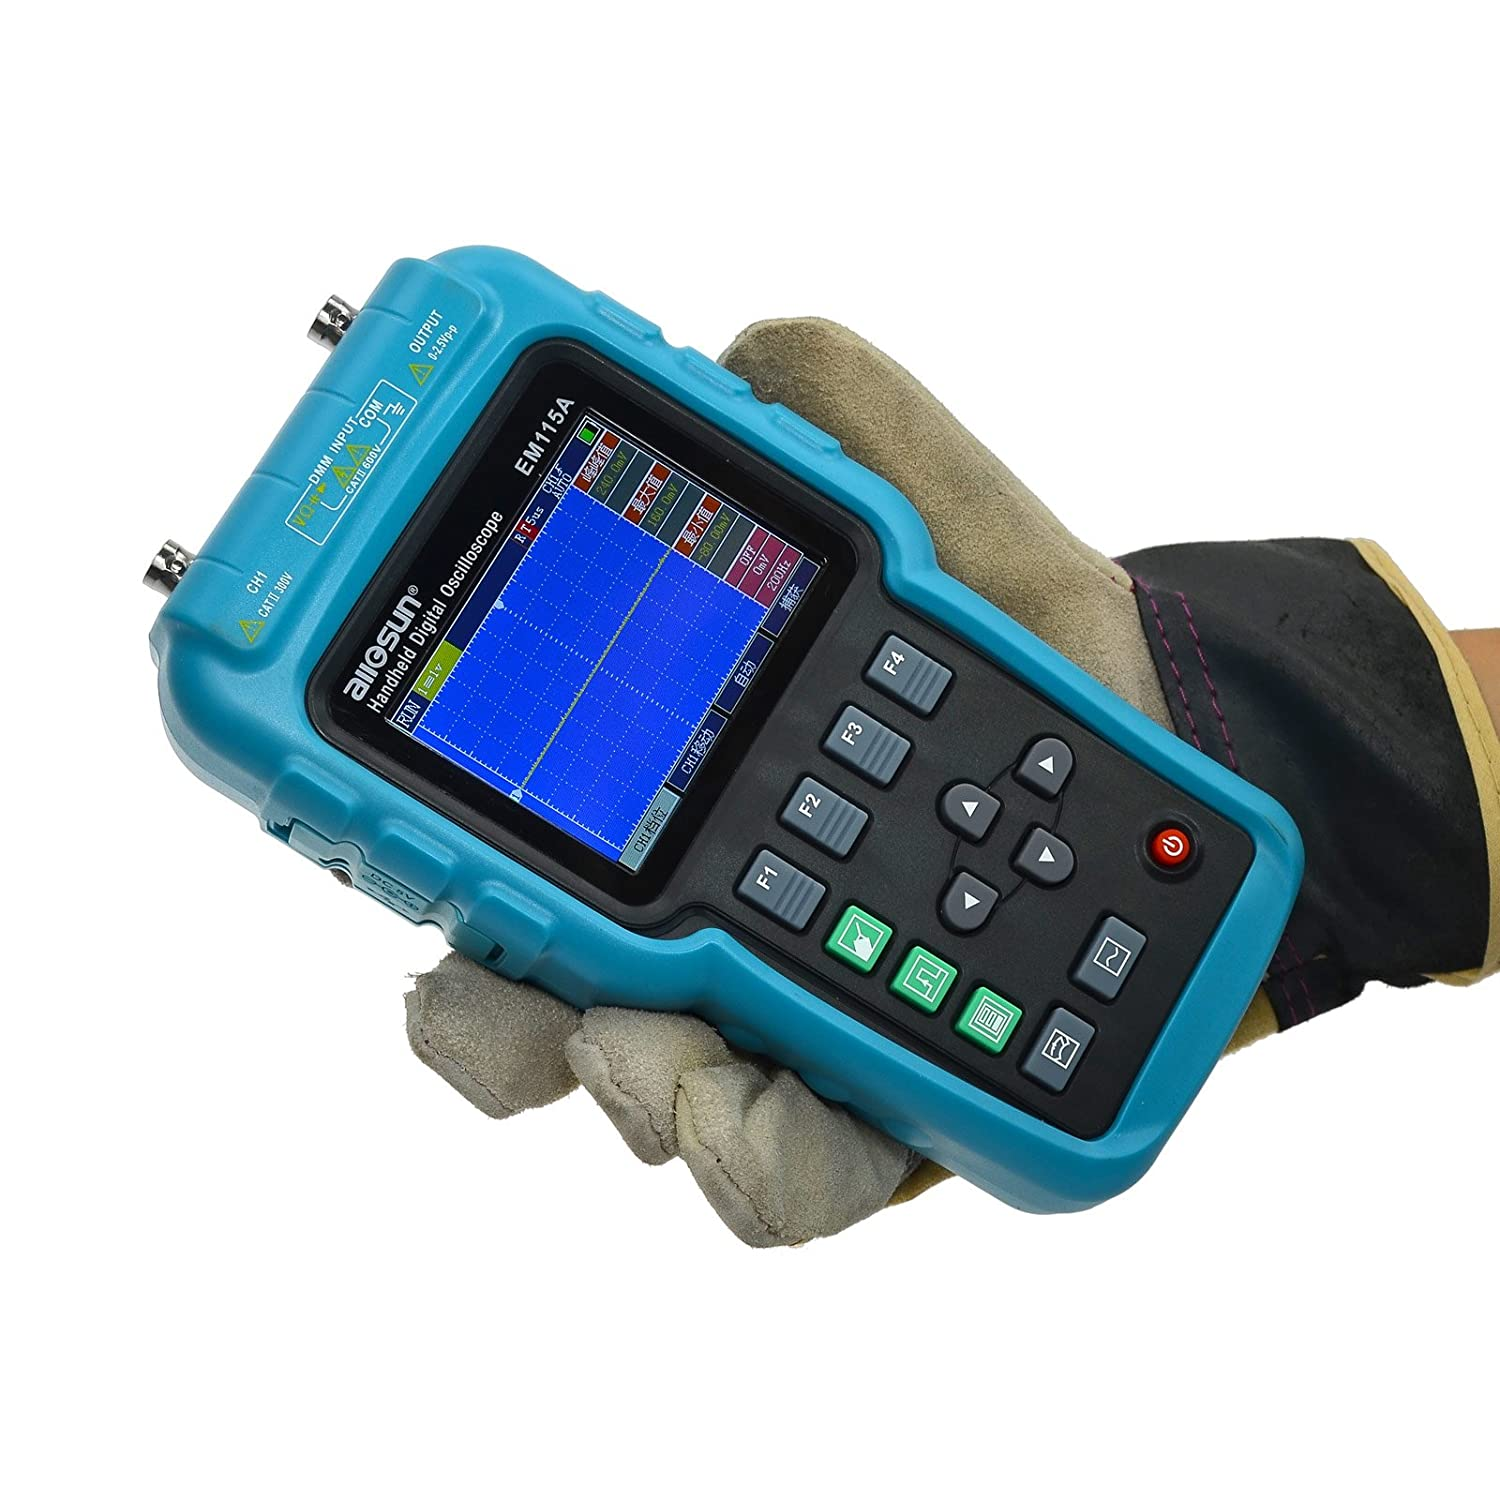 allsun 3 in 1 Digital Oscilloscope Meter with USB Computer Interface Multimeter DMM 50MHz Single Channel